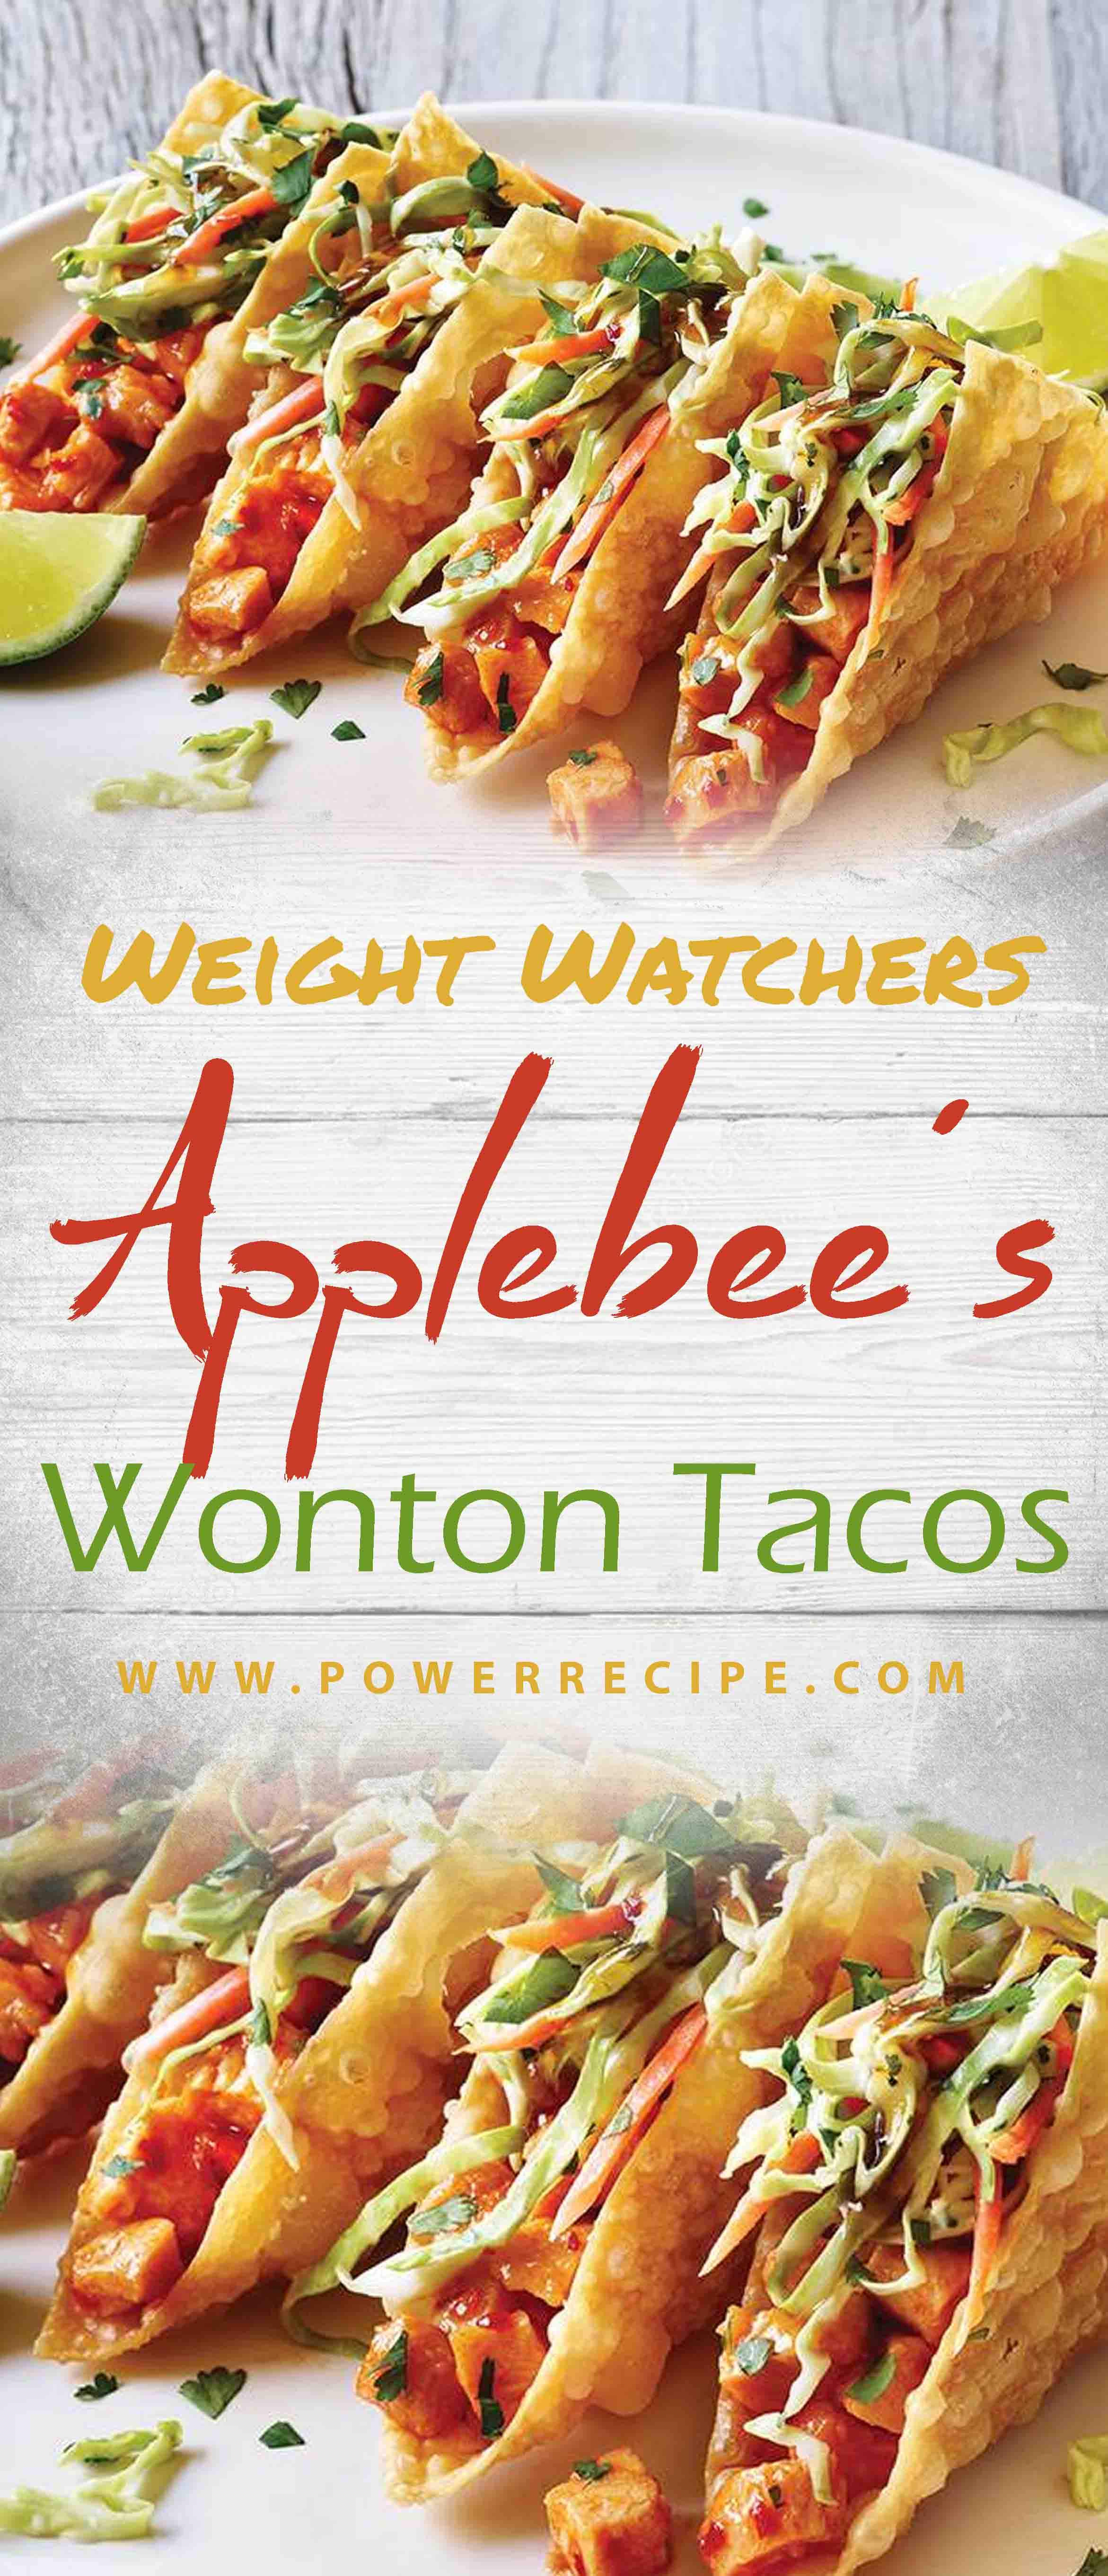 Applebee S Wonton Tacos All About Your Power Recipes Unique Recipes Recipes Food